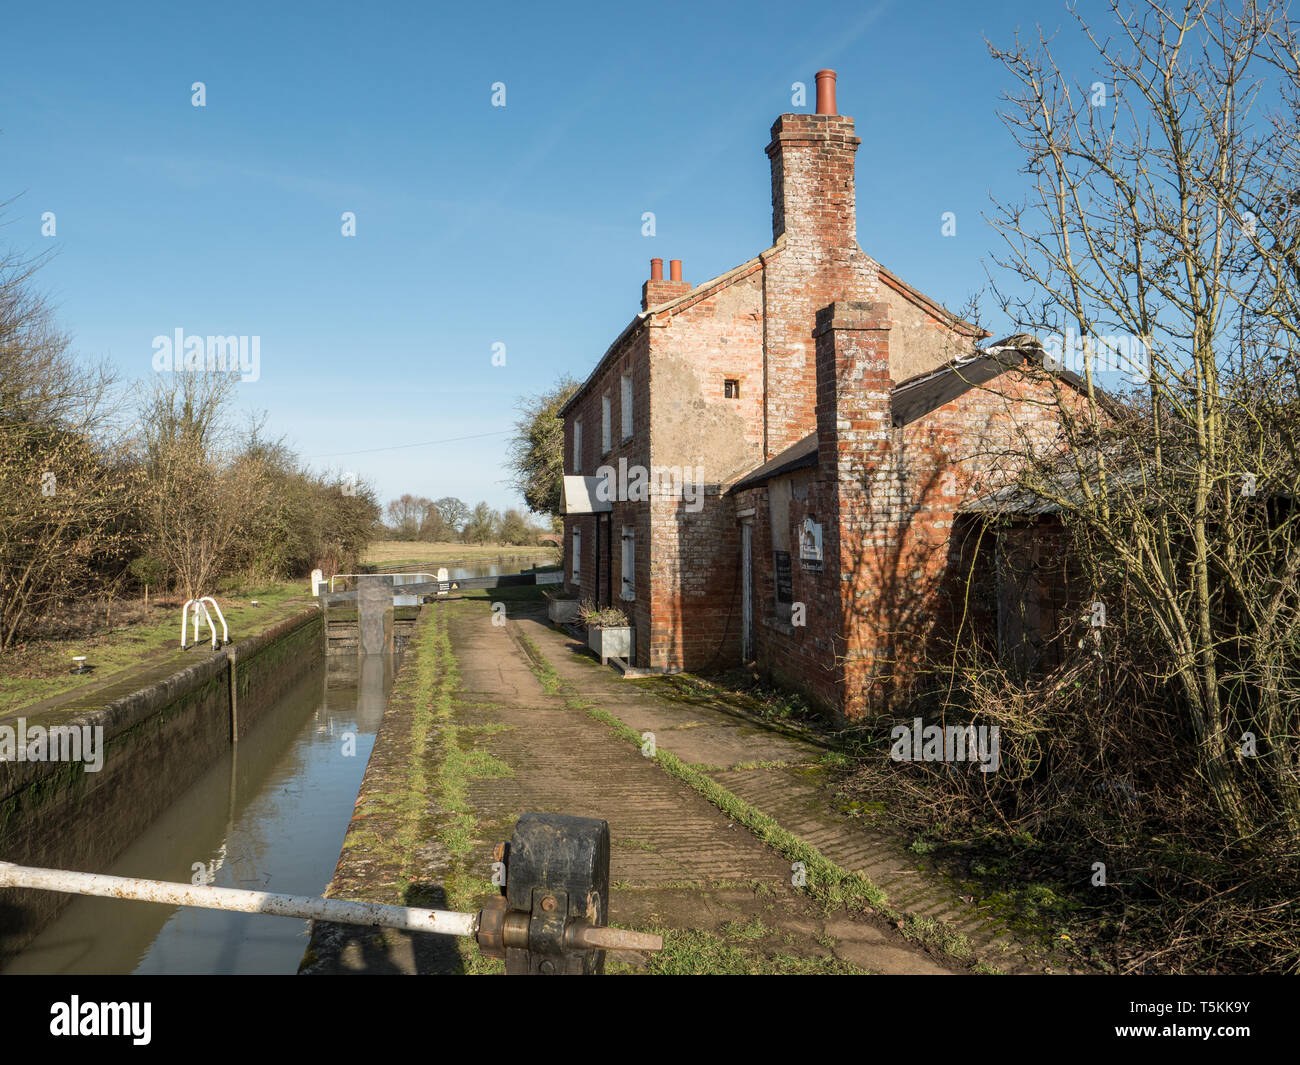 Vacant Lock Keepers Cottage on the Oxford Canal near Little Bourton near Banbury Oxfordshire, England. UK. - Stock Image